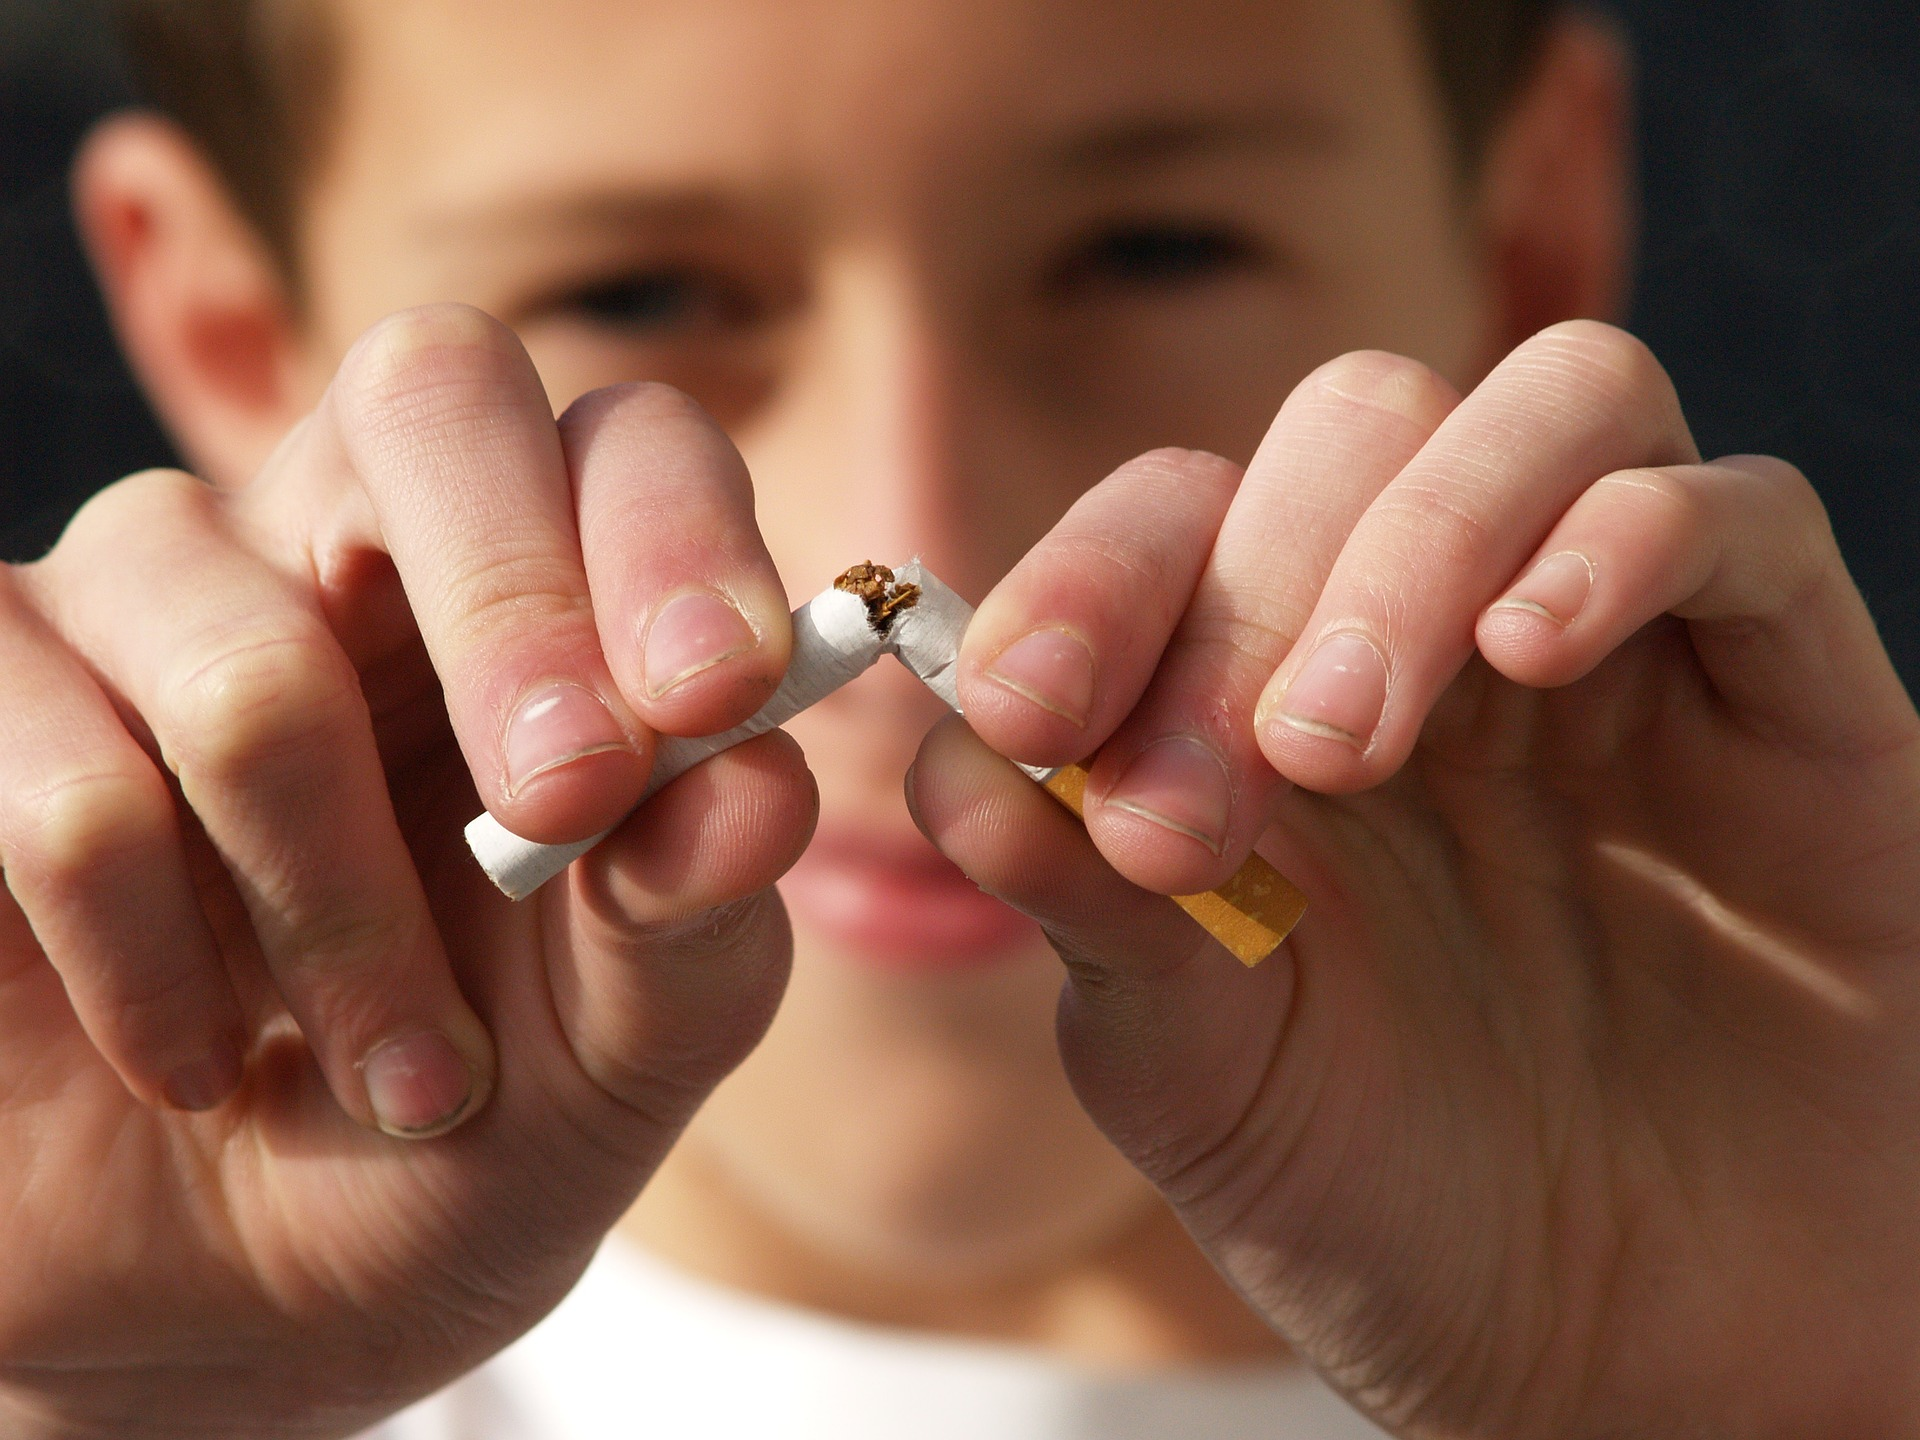 Quitting Smoking Made Easy